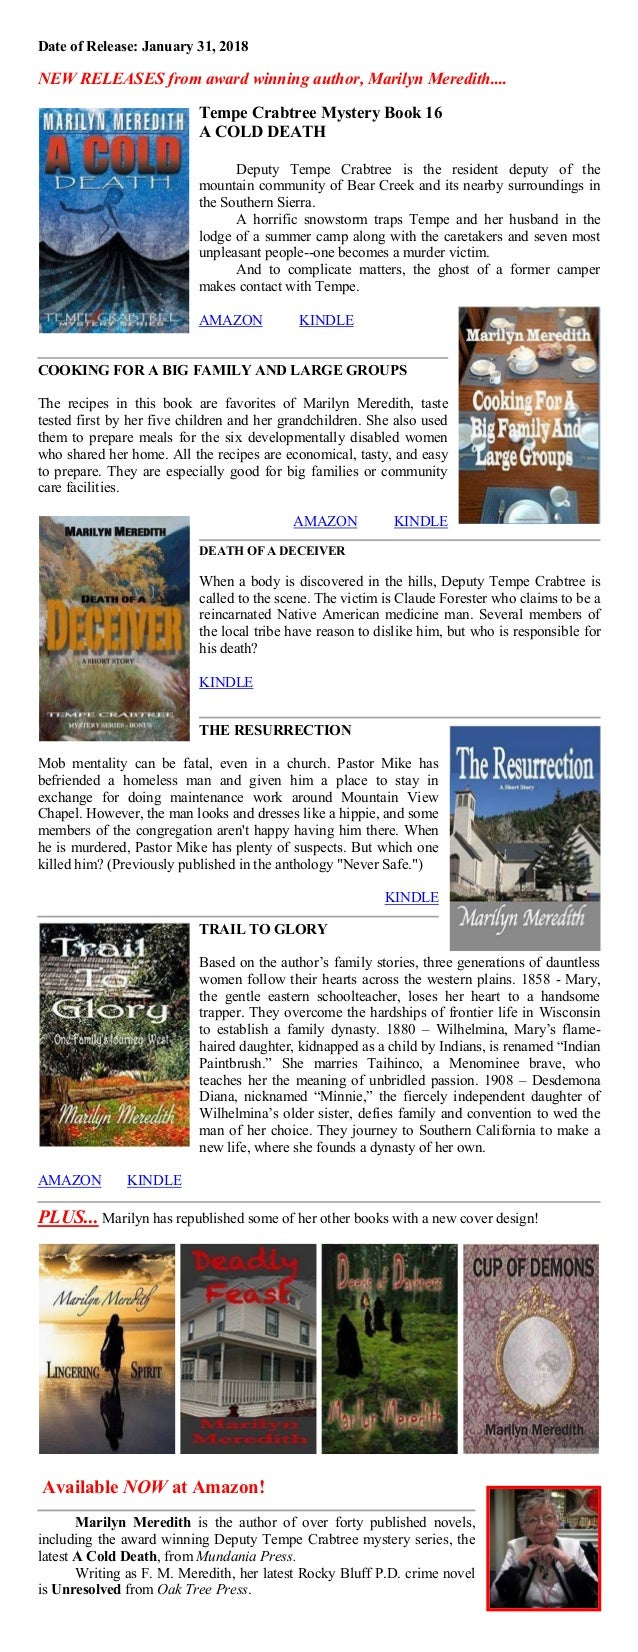 Date of Release: January 31, 2018 NEW RELEASES from award winning author, Marilyn Meredith.... Tempe Crabtree Mystery Book...